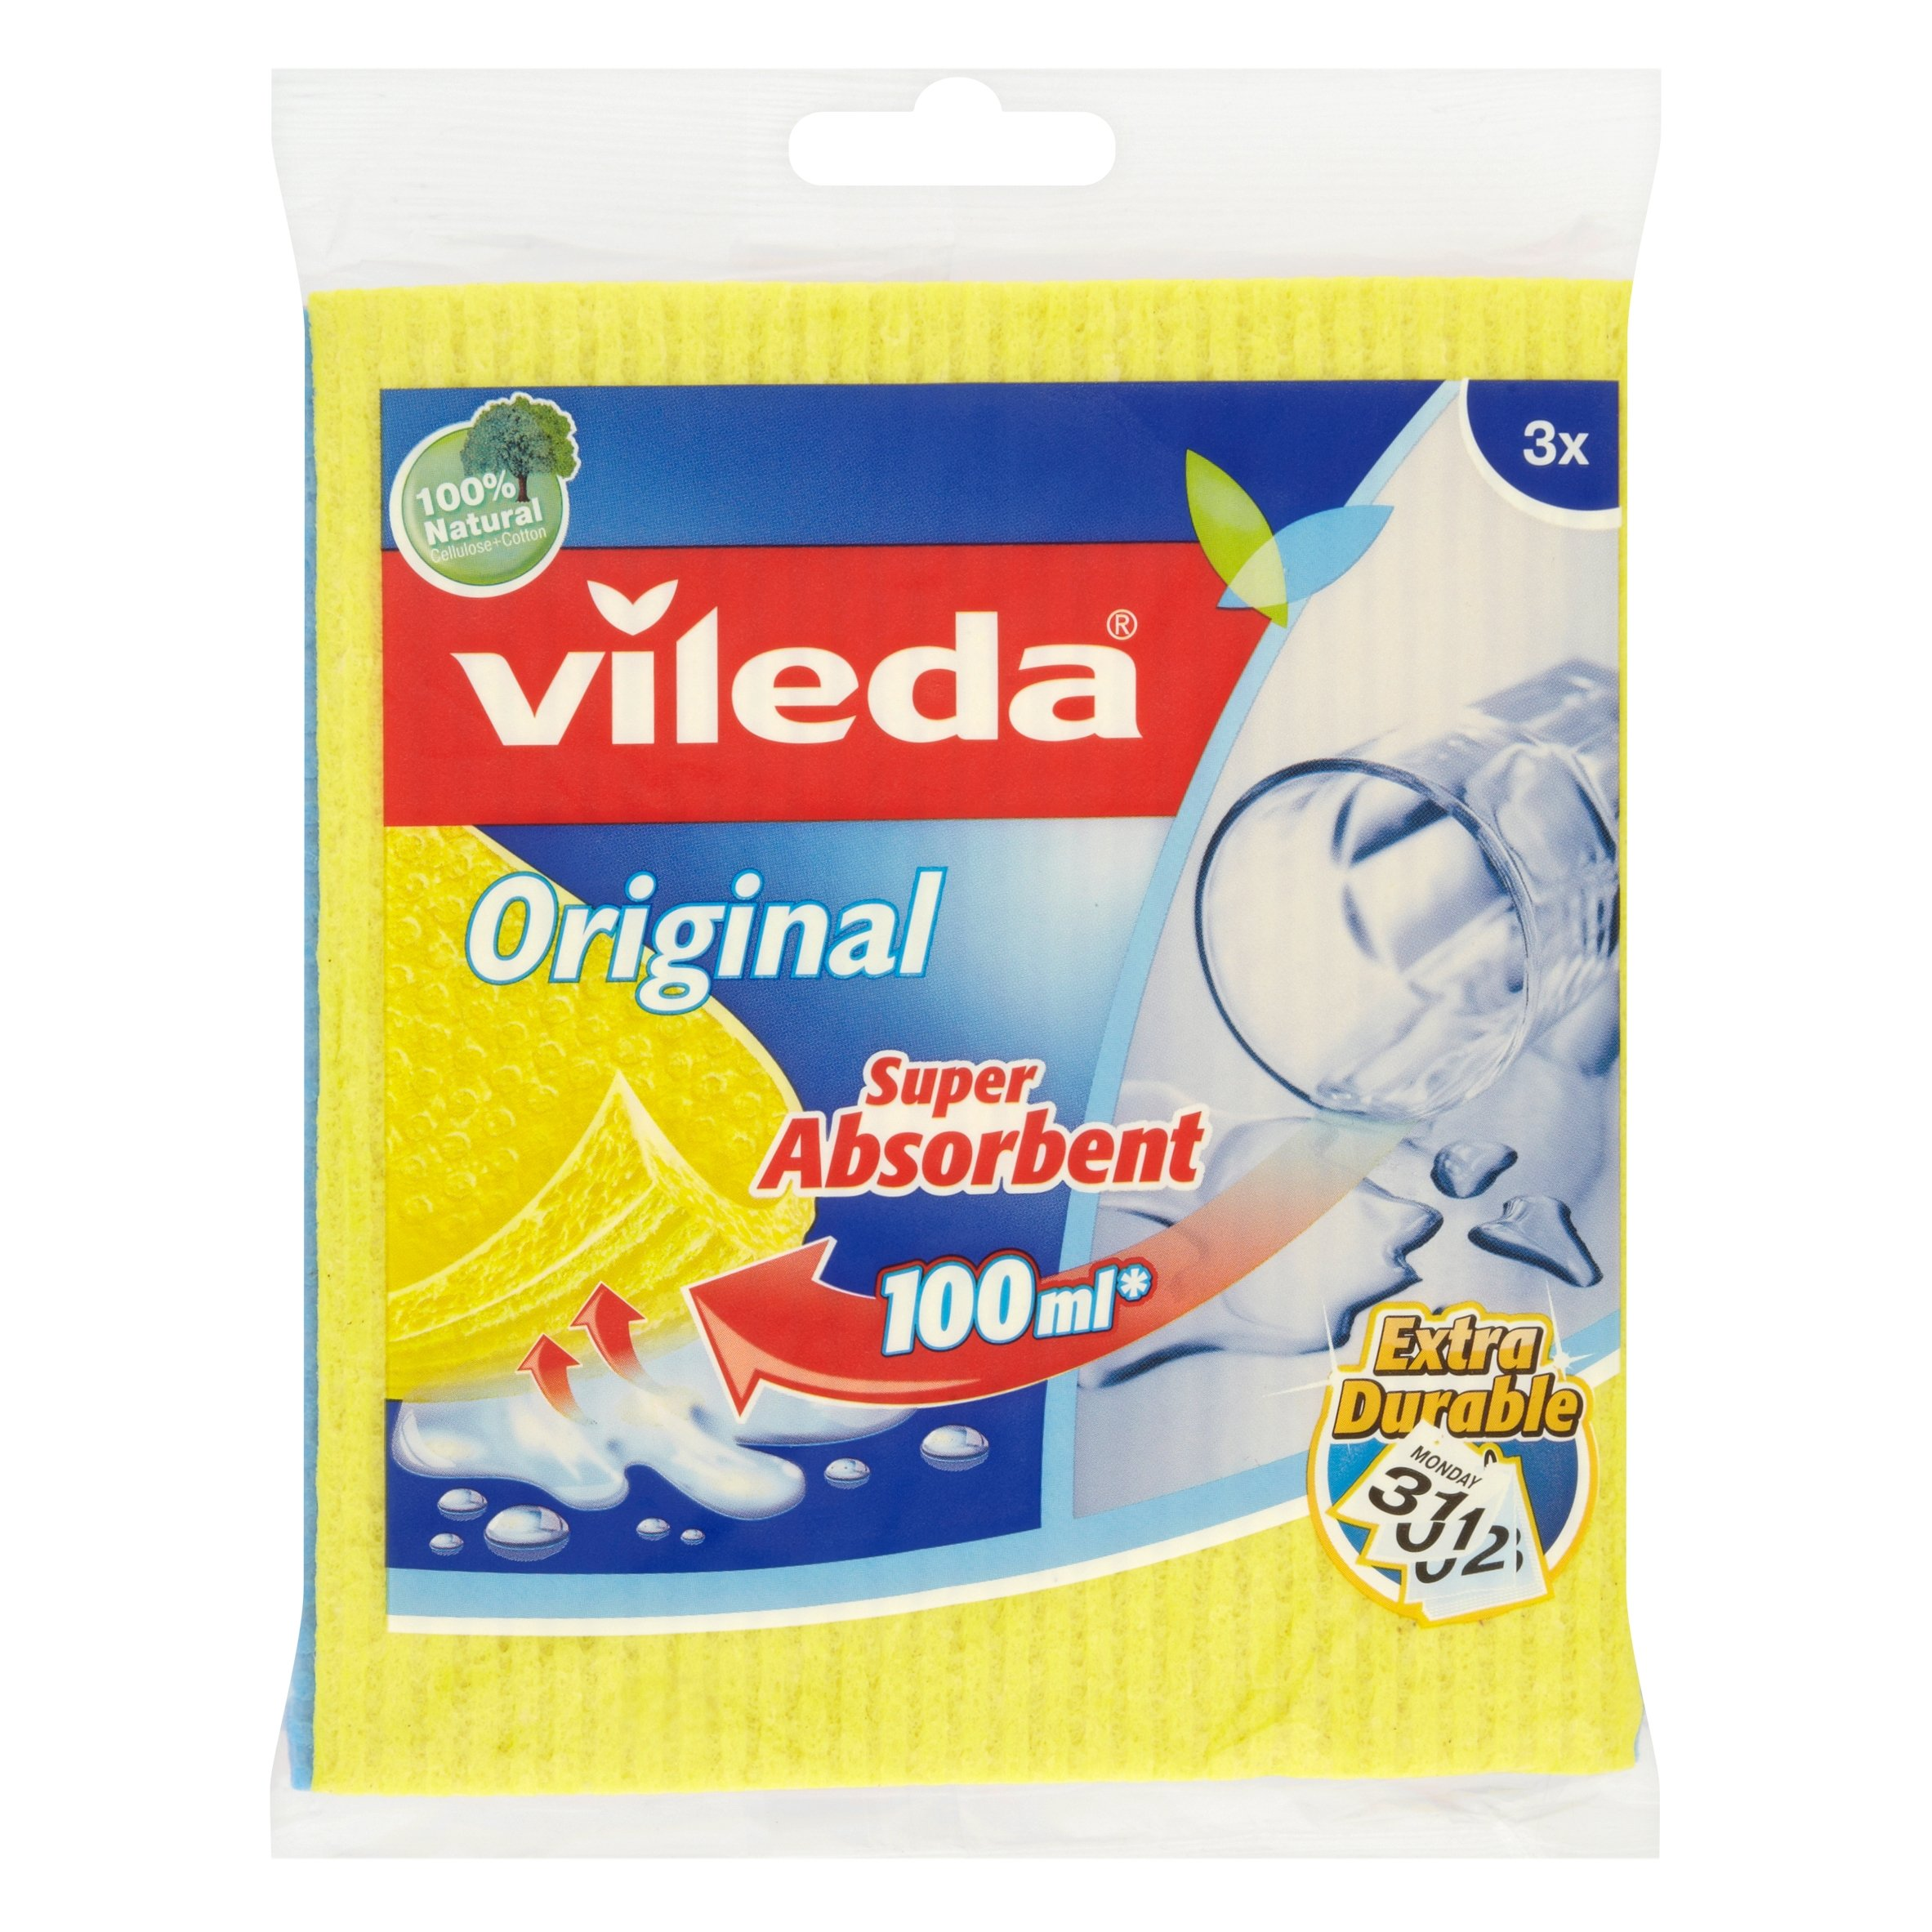 Vileda Super Absorbent Sponge Cloth, Pack of 12, Multi-Colour by Vileda (Image #1)